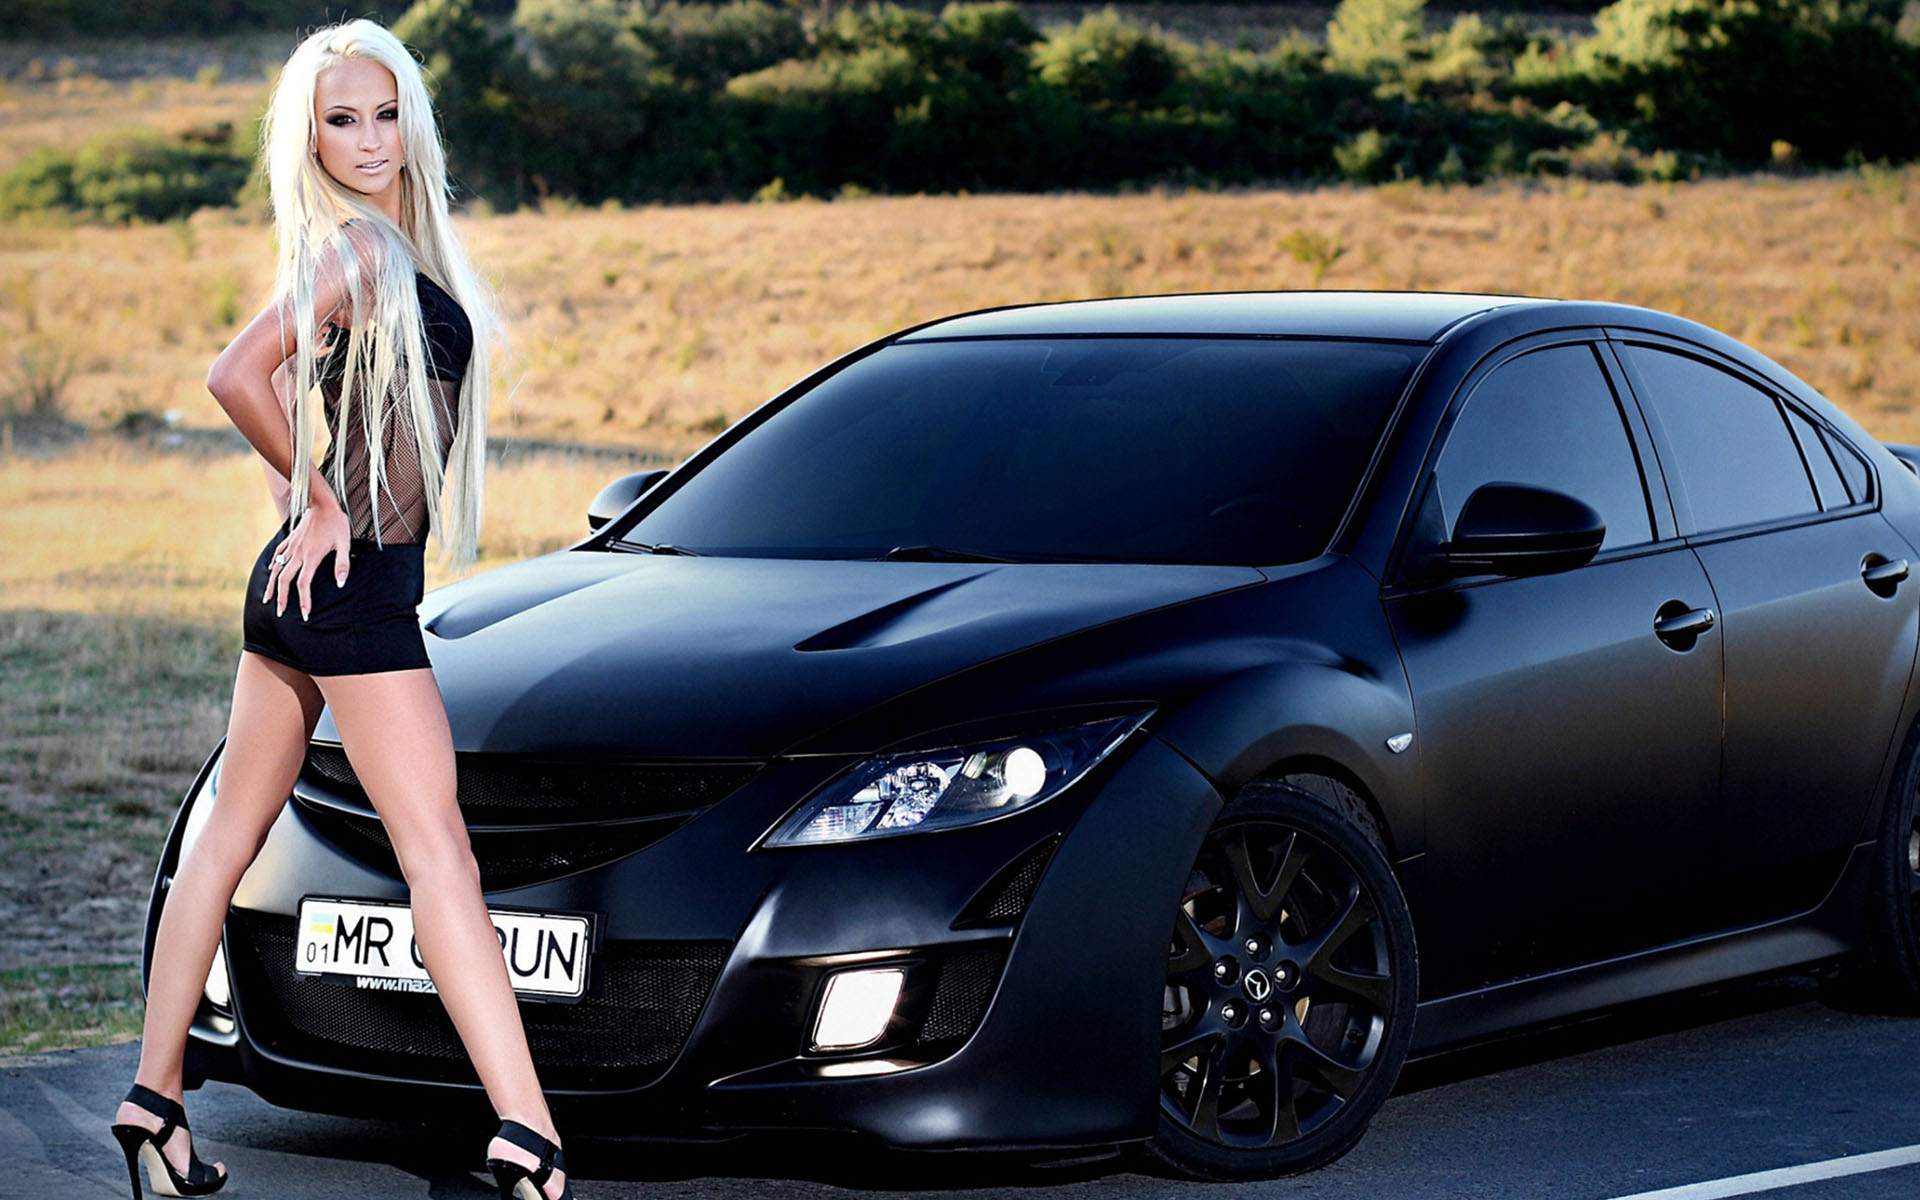 Chicks And Cars Wallpapers